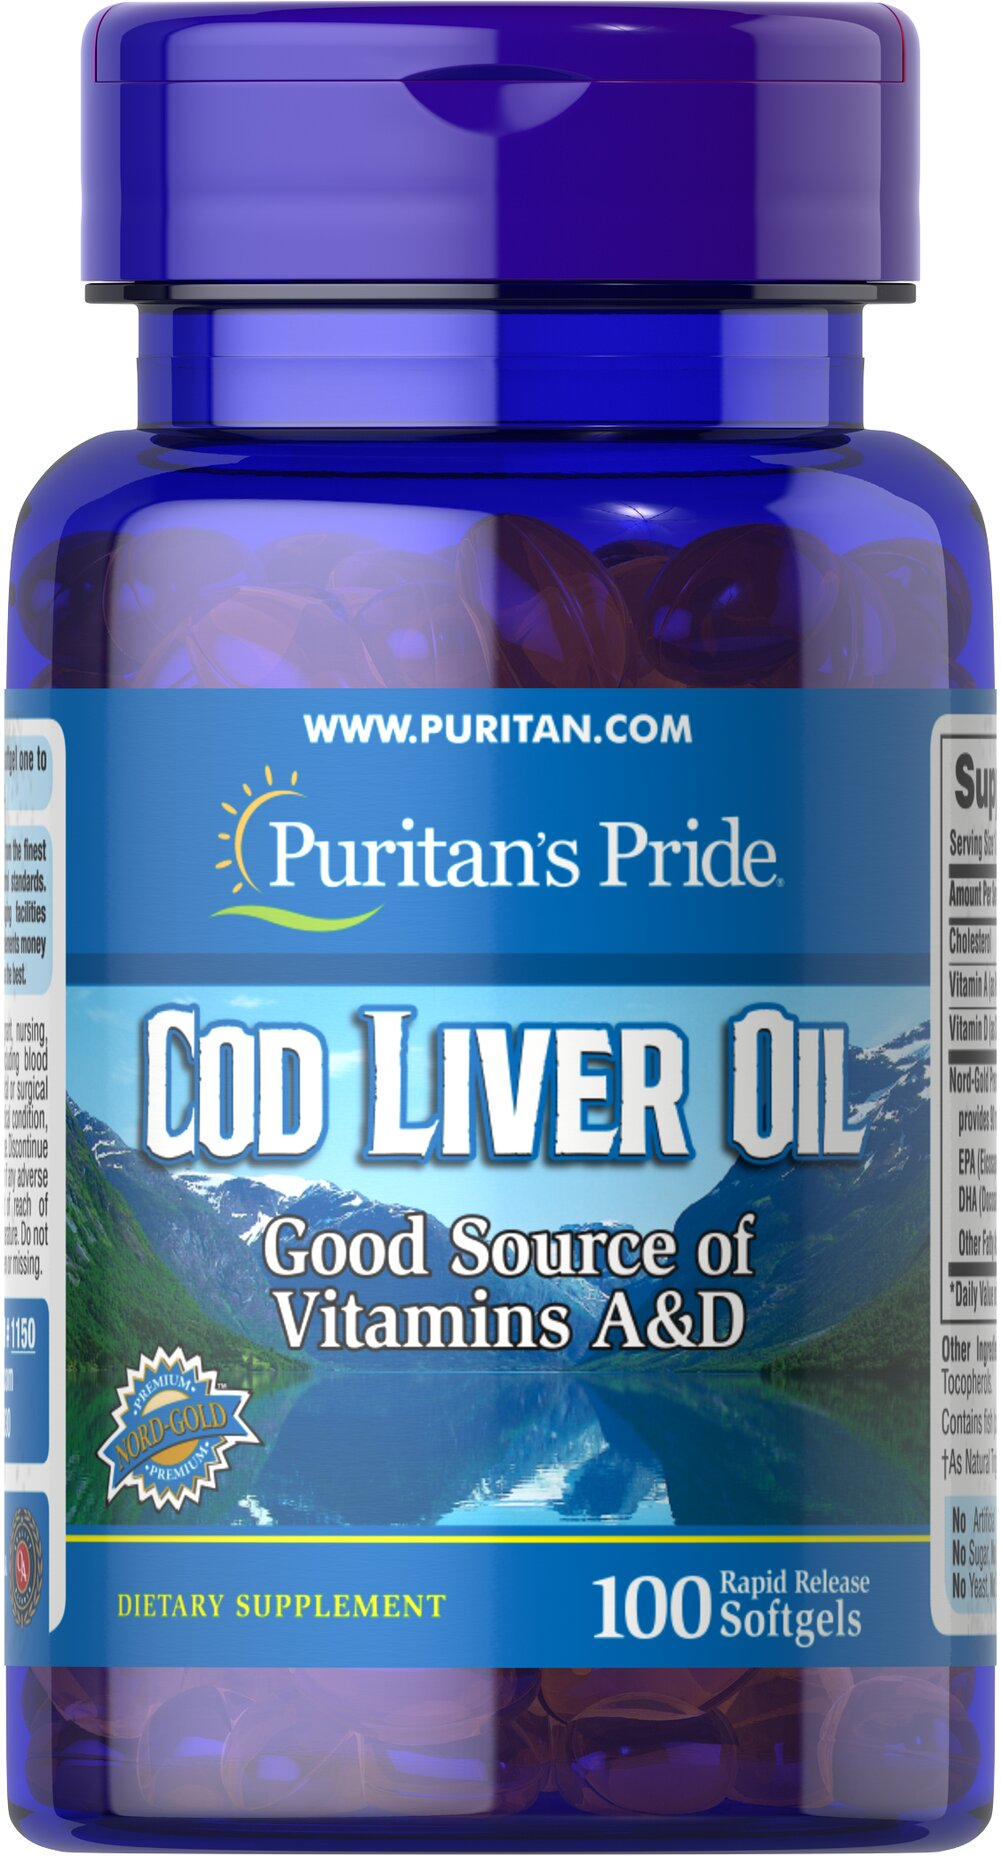 Norwegian Cod Liver Oil 415 mg <p>Norwegian cod has traditionally been one of the most popular natural sources of  <b>both Vitamins A & D</b>. </p> <p>Vitamin D helps maintain healthy bones in adults. ** </p>  <p>Vitamin A helps maintain eye health. **</p>  <p>Vitamins A & D help regulate the immune system.**</p>  100 Softgels 415 mg $4.99